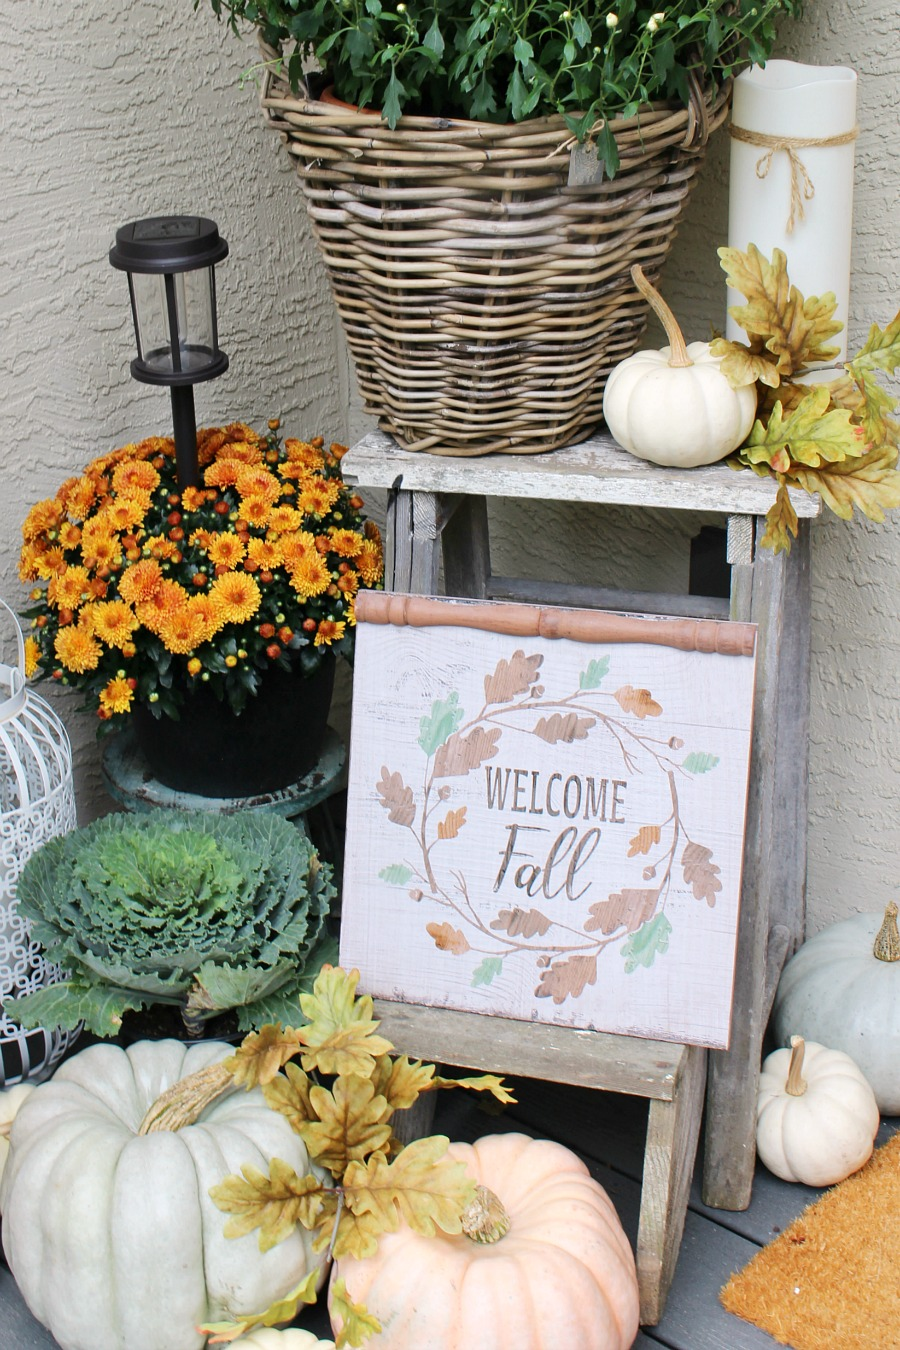 Rustic step ladder with pumpkins and a fall sign on a fall front porch.